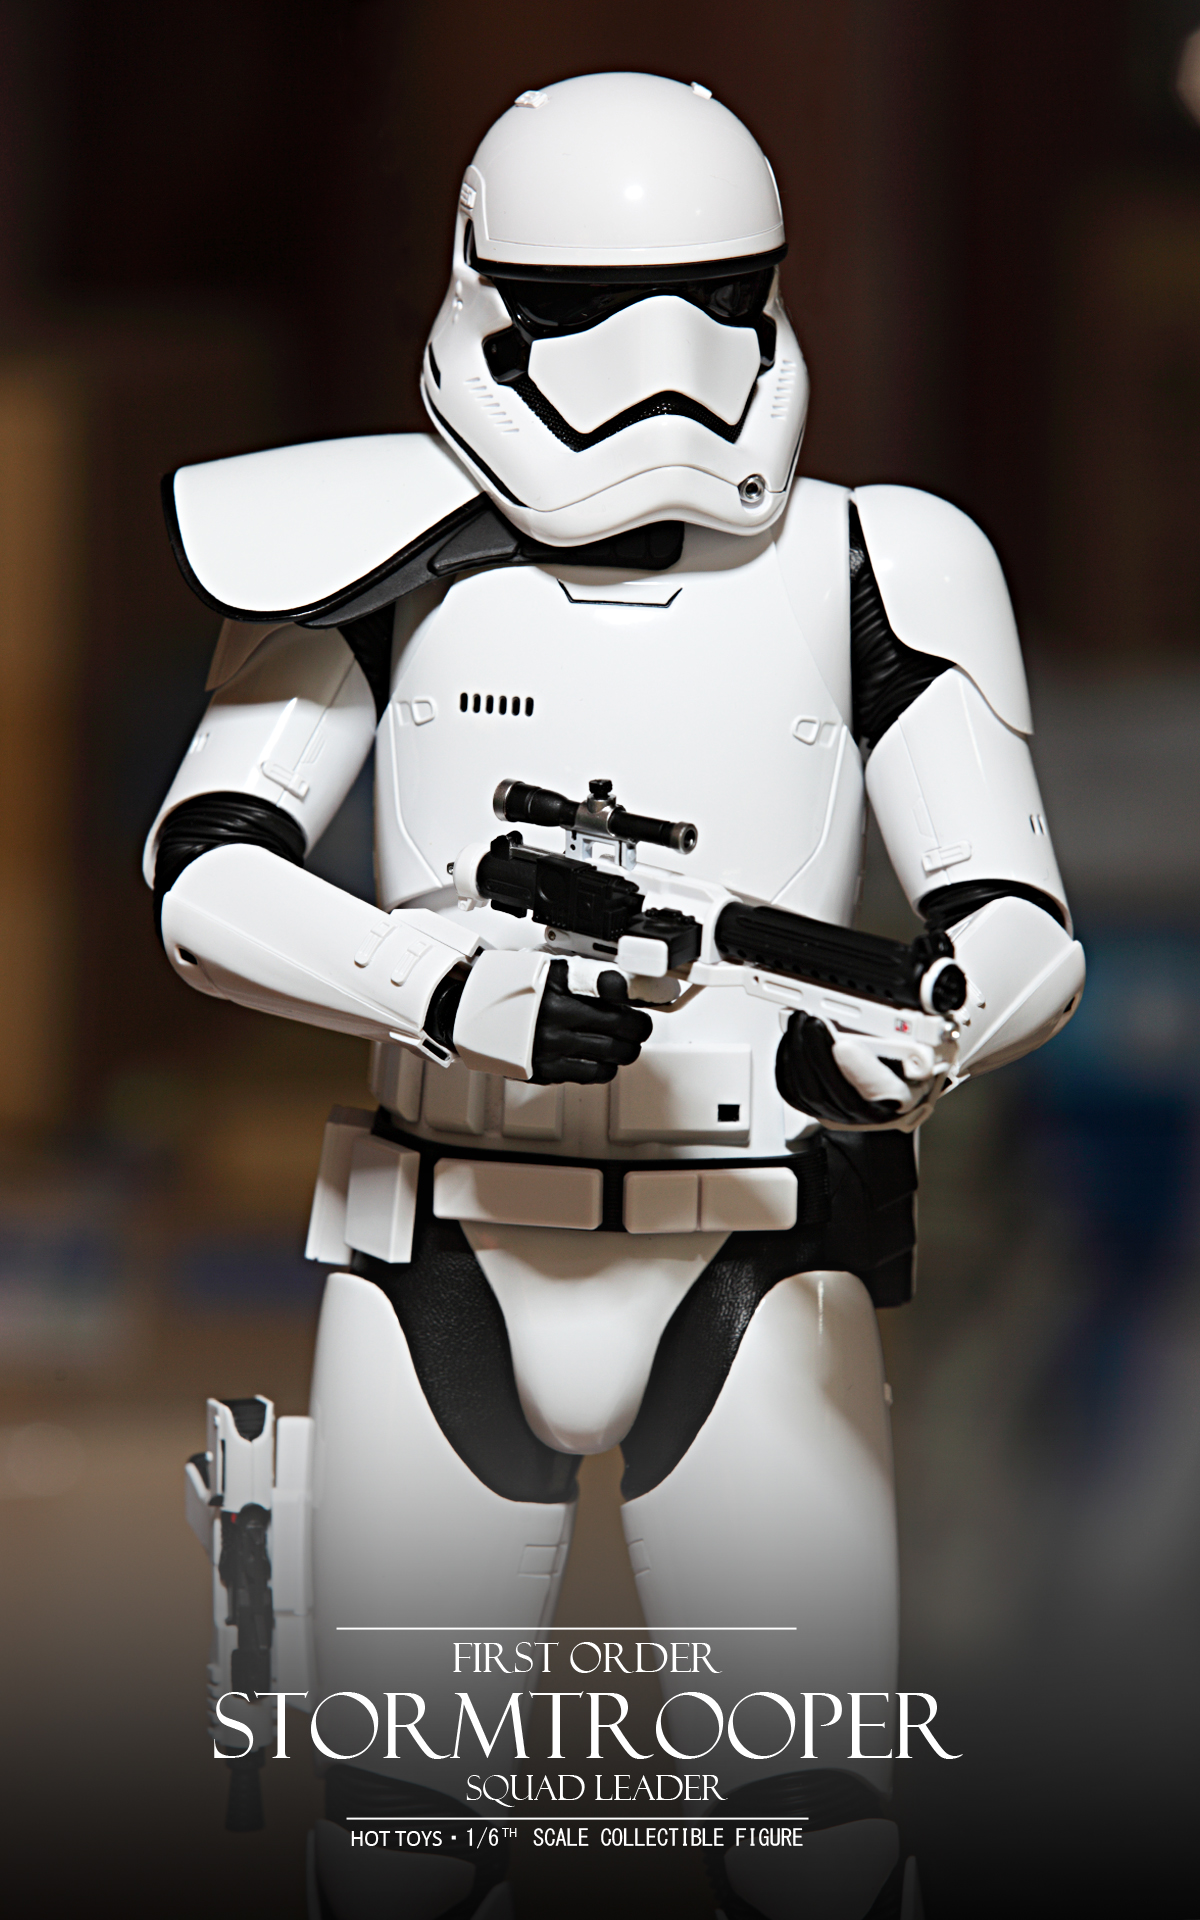 hottoys-star-wars-the-force-awakens-first-order-stormtrooper-Squad-Leader-picture01hottoys-star-wars-the-force-awakens-first-order-stormtrooper-Squad-Leader-picture03